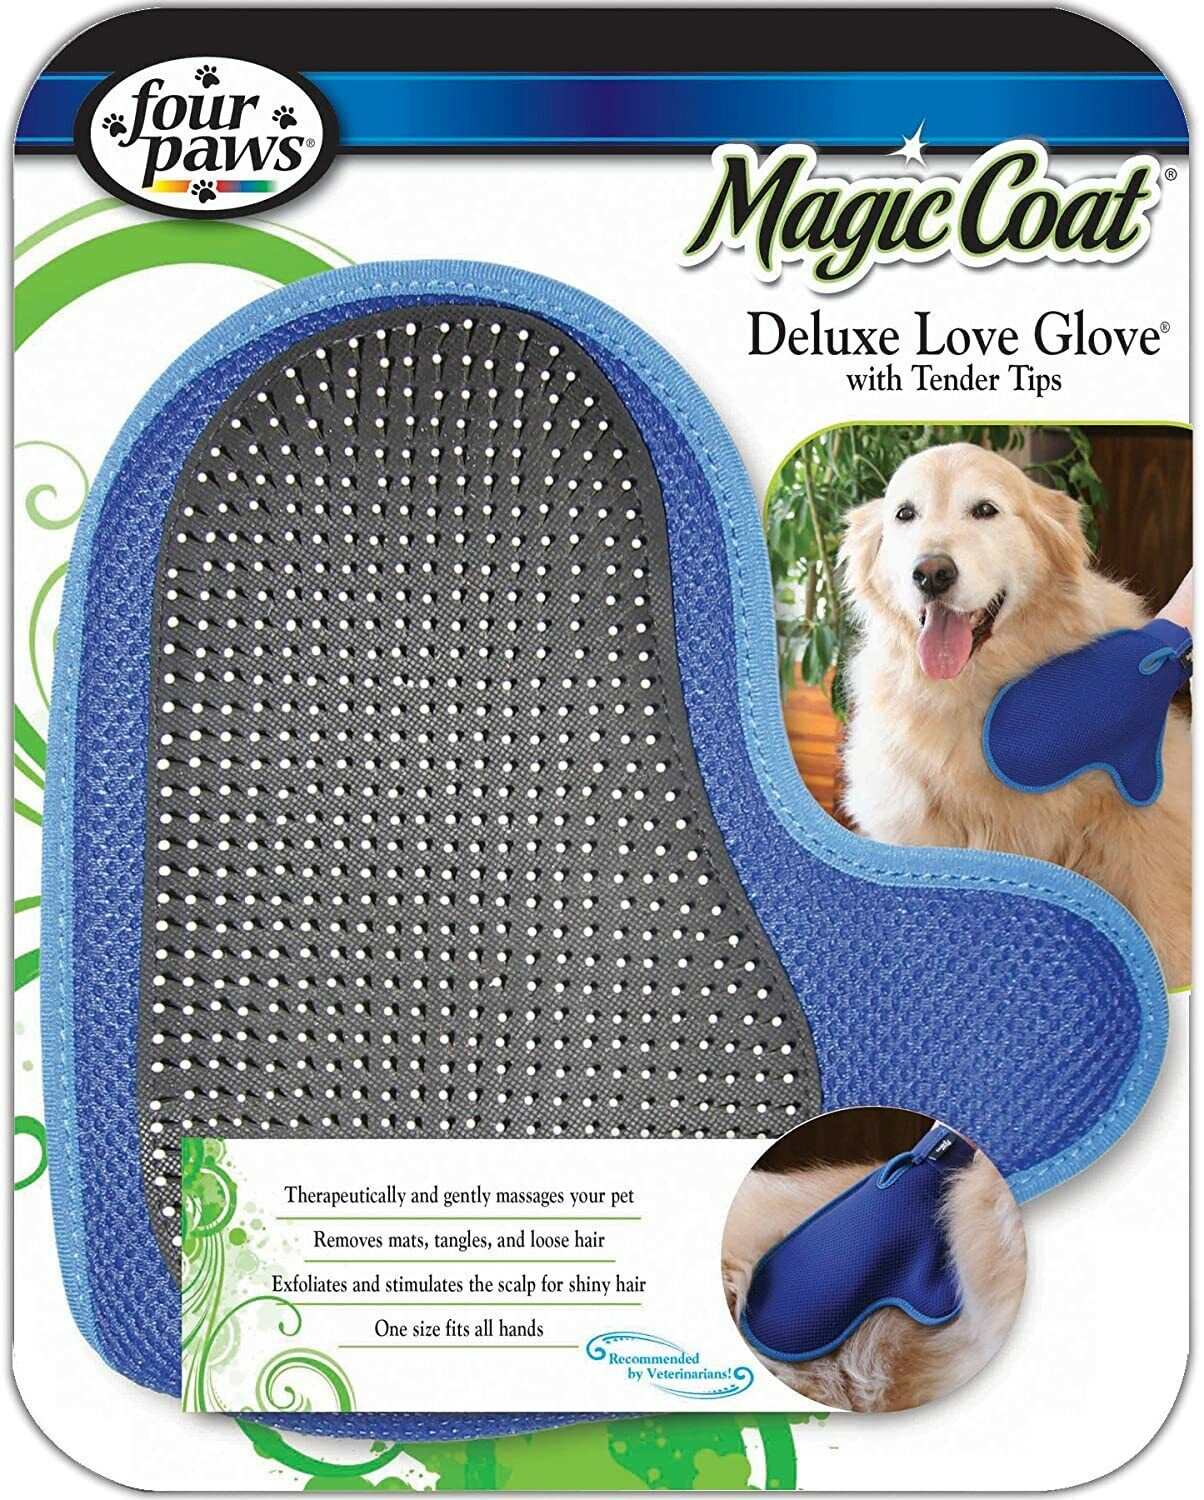 Four Paws Magic Coat Dog Grooming Deluxe Love Glove With Tender Tips Brushes, Combs & Rakes